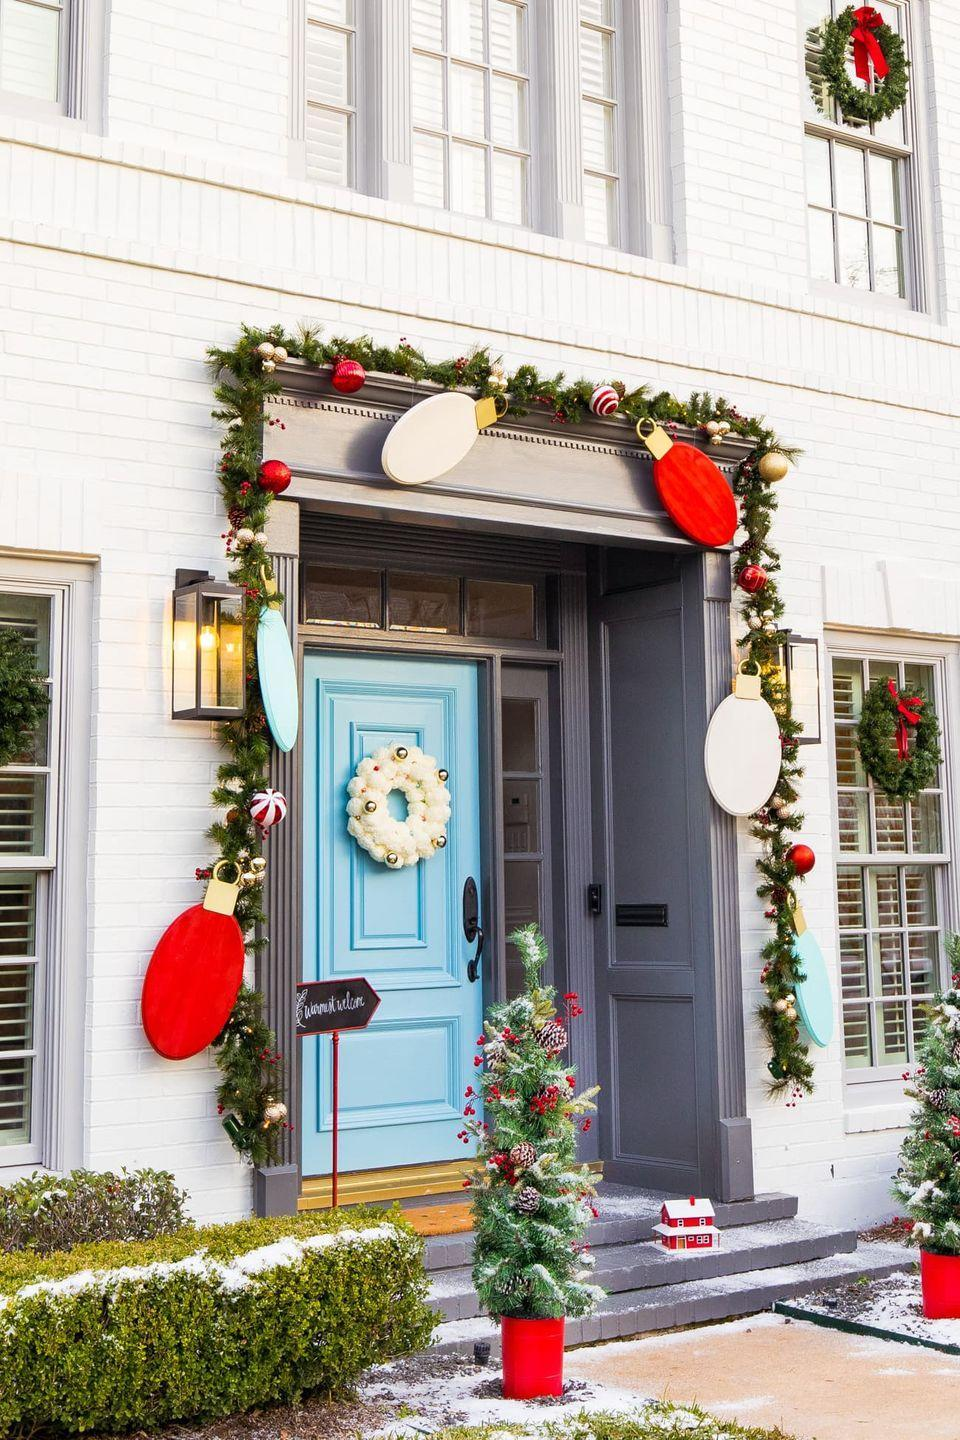 "<p>It's impossible to resist the spirit of the holiday with this bold outdoor Christmas design—complete with oversized wooden ornaments and quirky potted trees—by <a href=""https://sugarandcloth.com/"" rel=""nofollow noopener"" target=""_blank"" data-ylk=""slk:Sugar & Cloth"" class=""link rapid-noclick-resp"">Sugar & Cloth</a>.</p>"